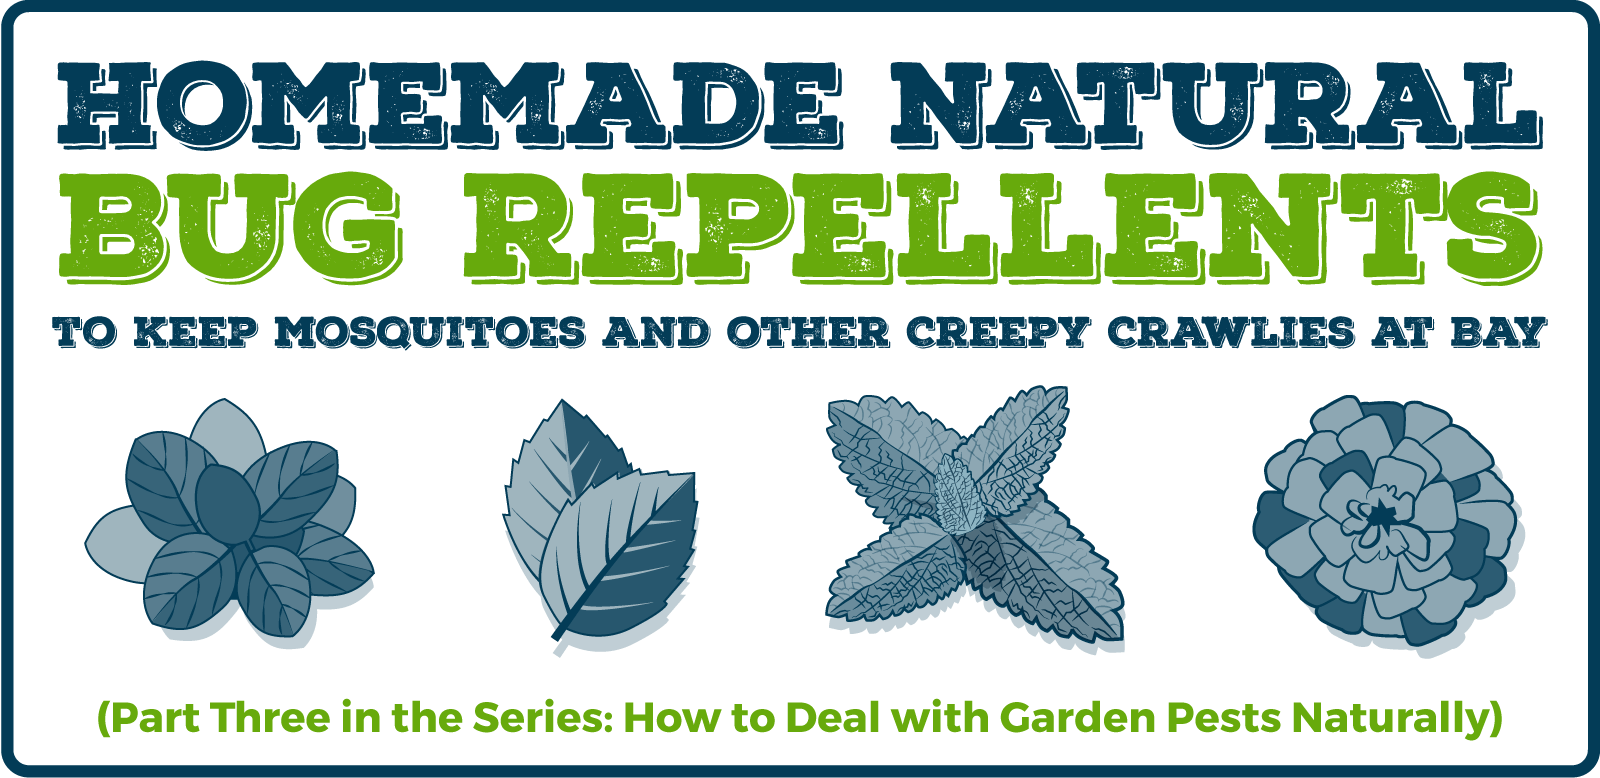 Homemade Natural Bug Repellants: (Part Three in the Series: How to Deal with Garden Pests Naturally)